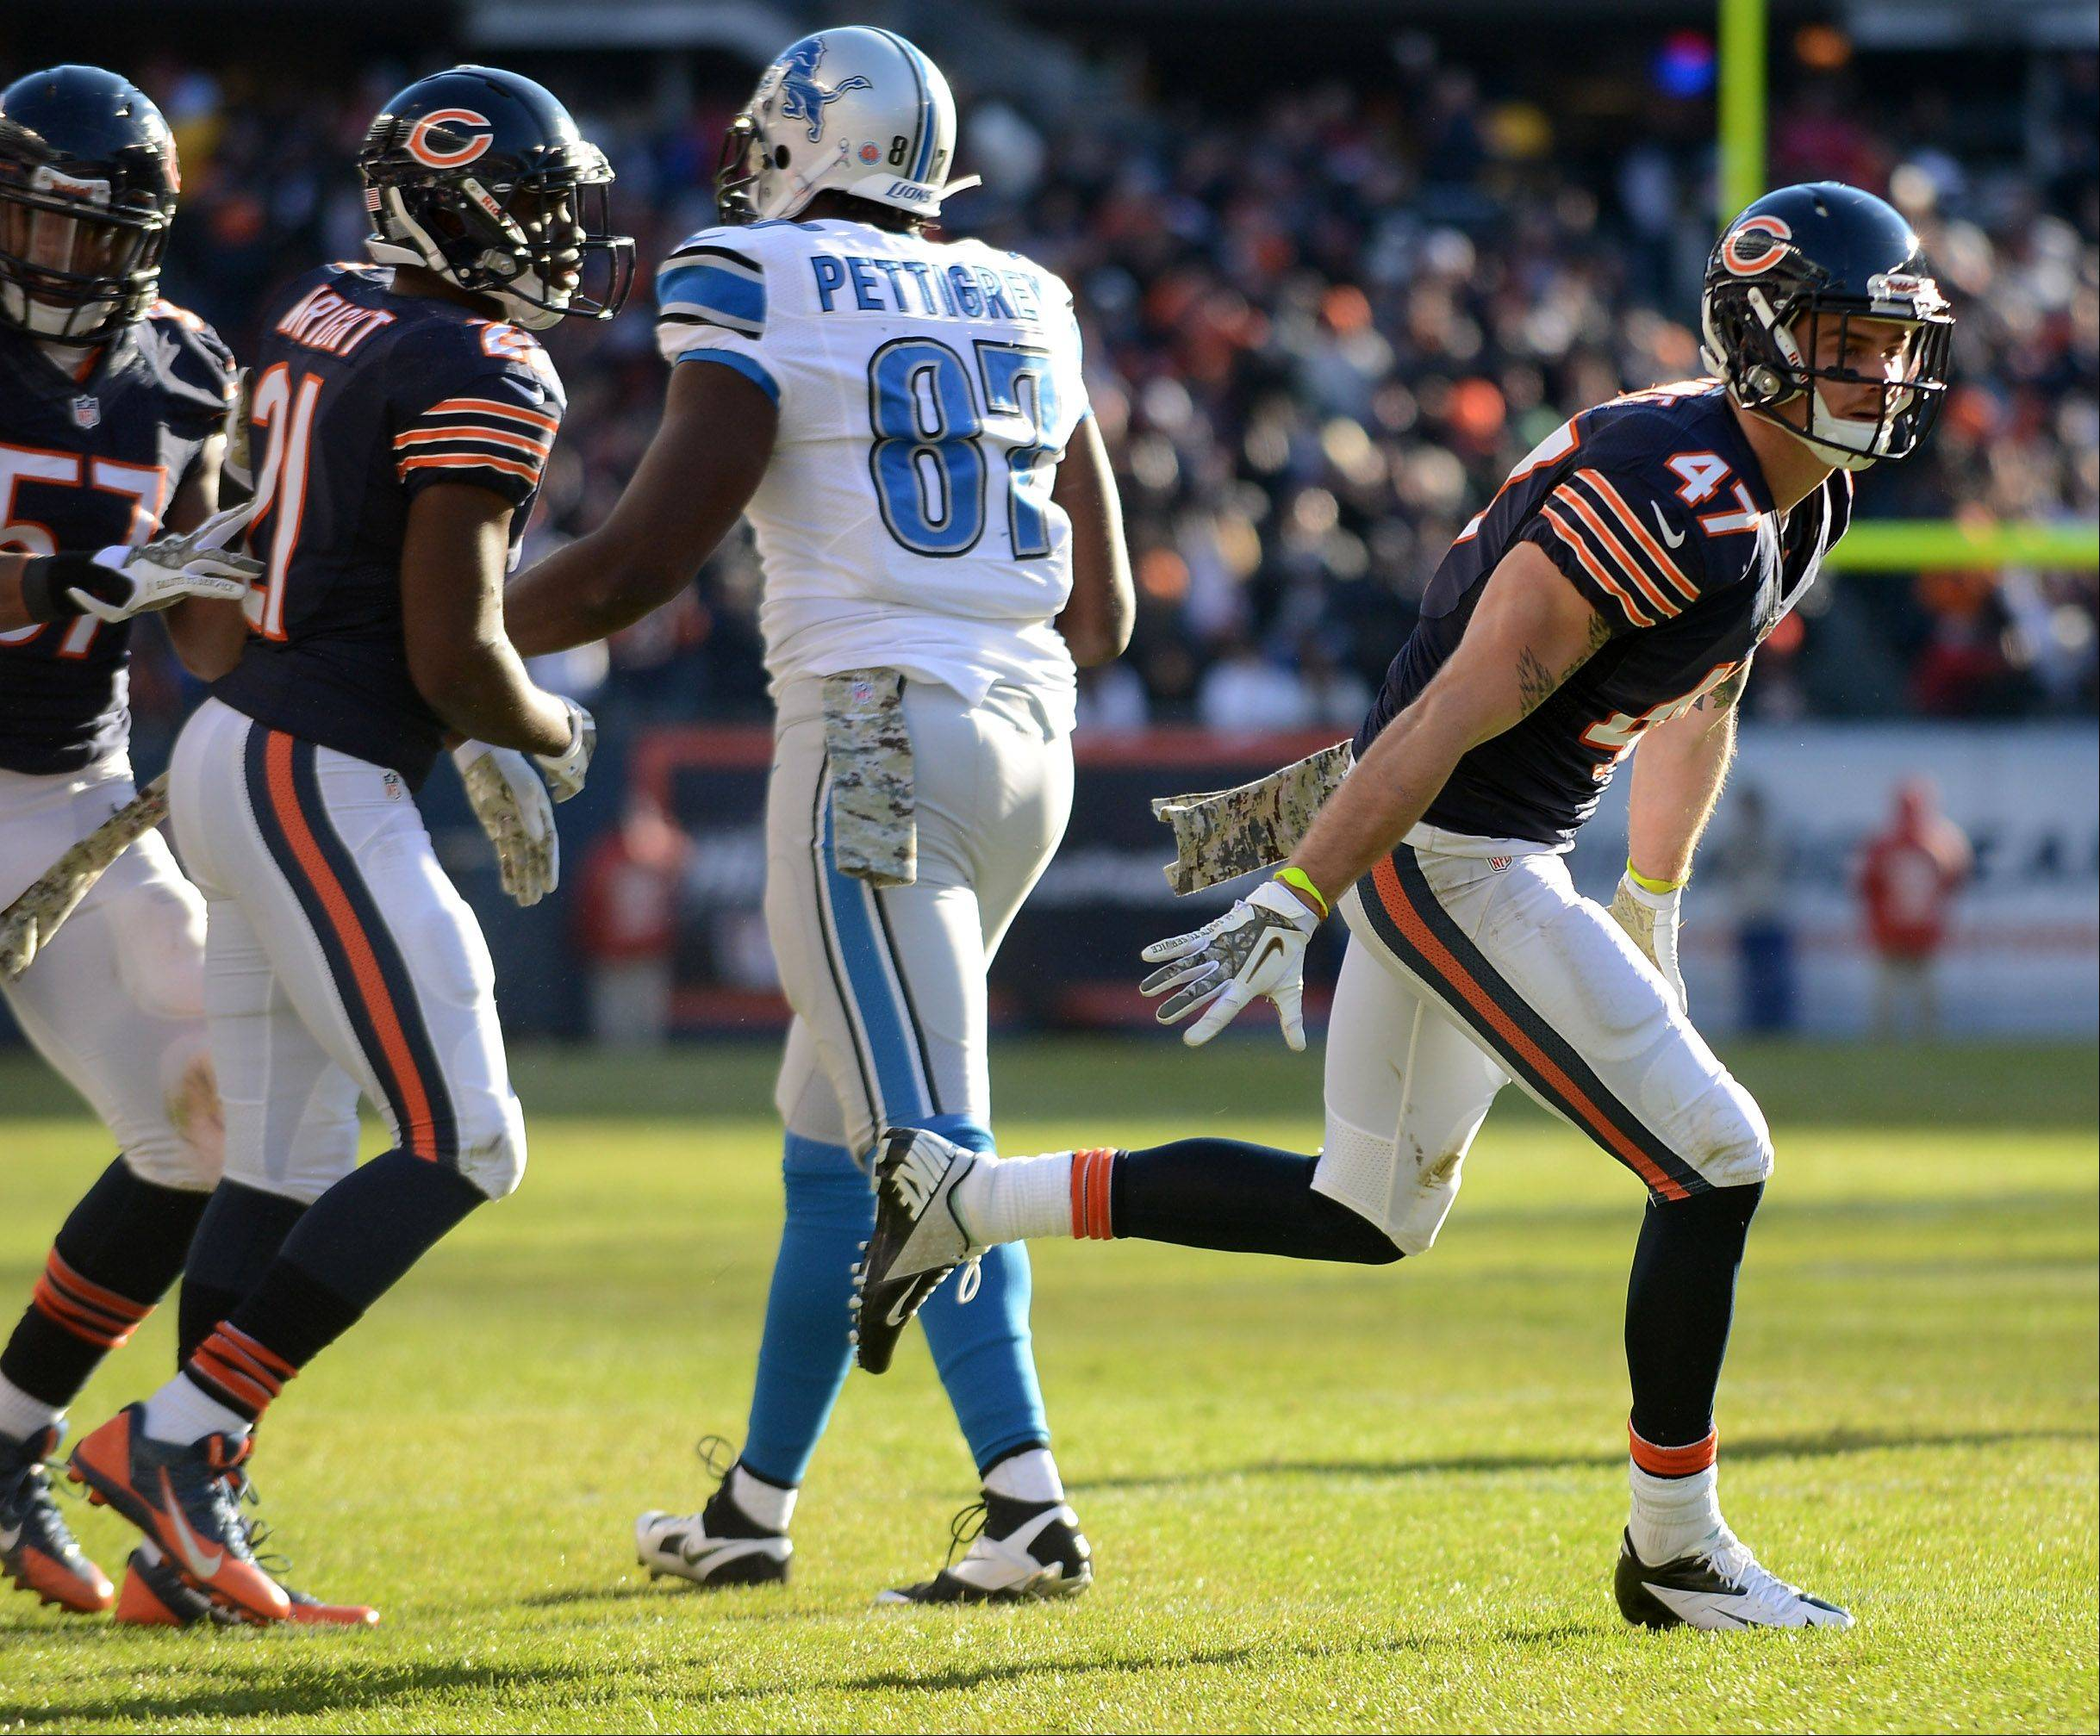 Chicago Bears free safety Chris Conte (47) celebrates his fourth quarter interception during Sunday's game in Chicago.